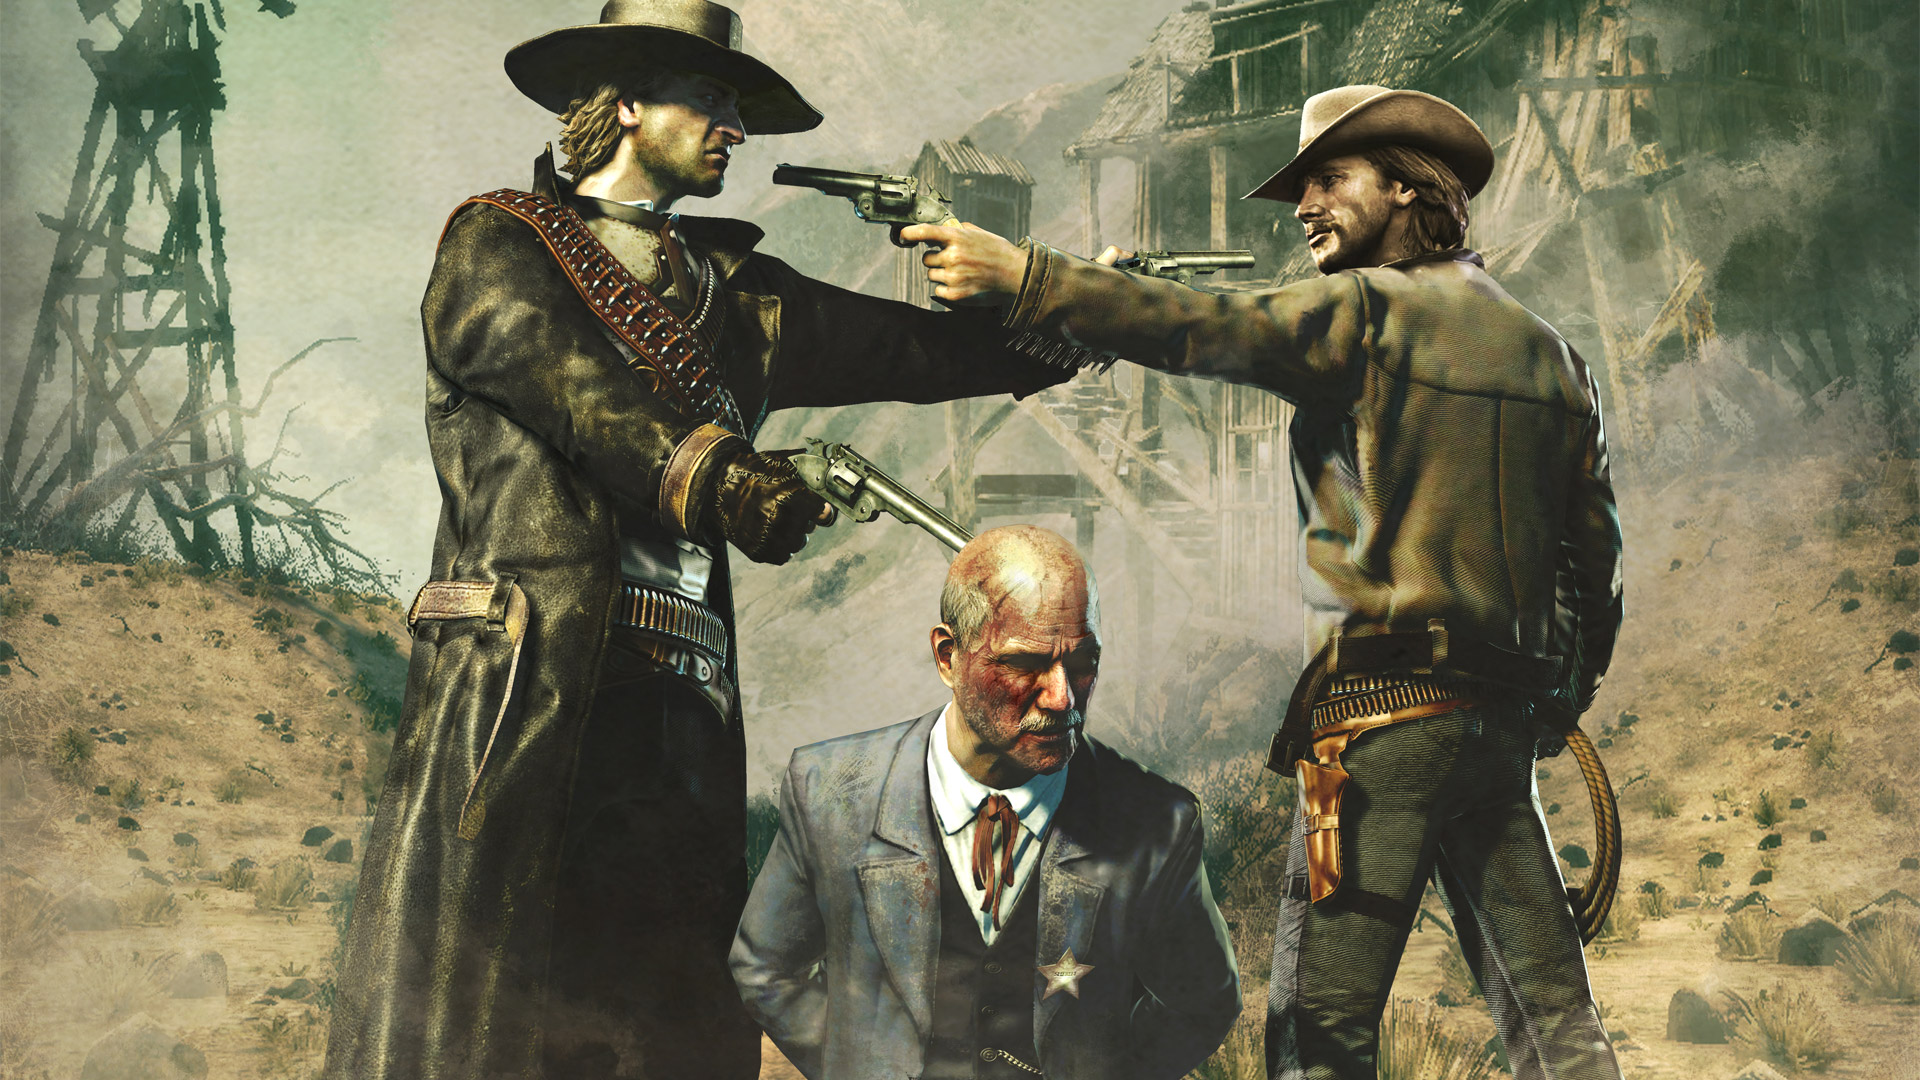 Free Call of Juarez: Bound in Blood Wallpaper in 1920x1080